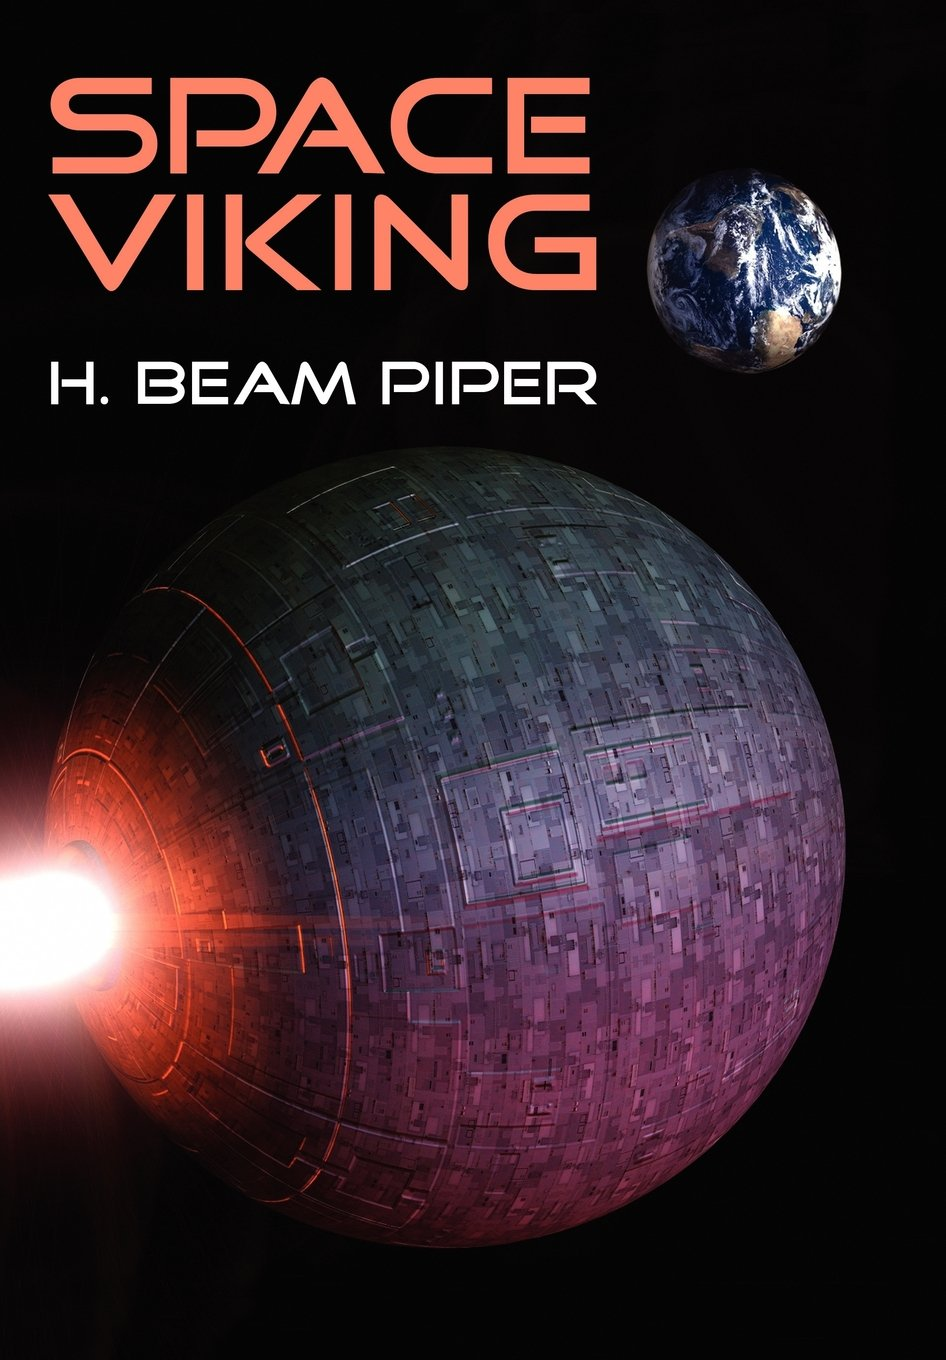 Image - Space Viking by H. Beam Piper